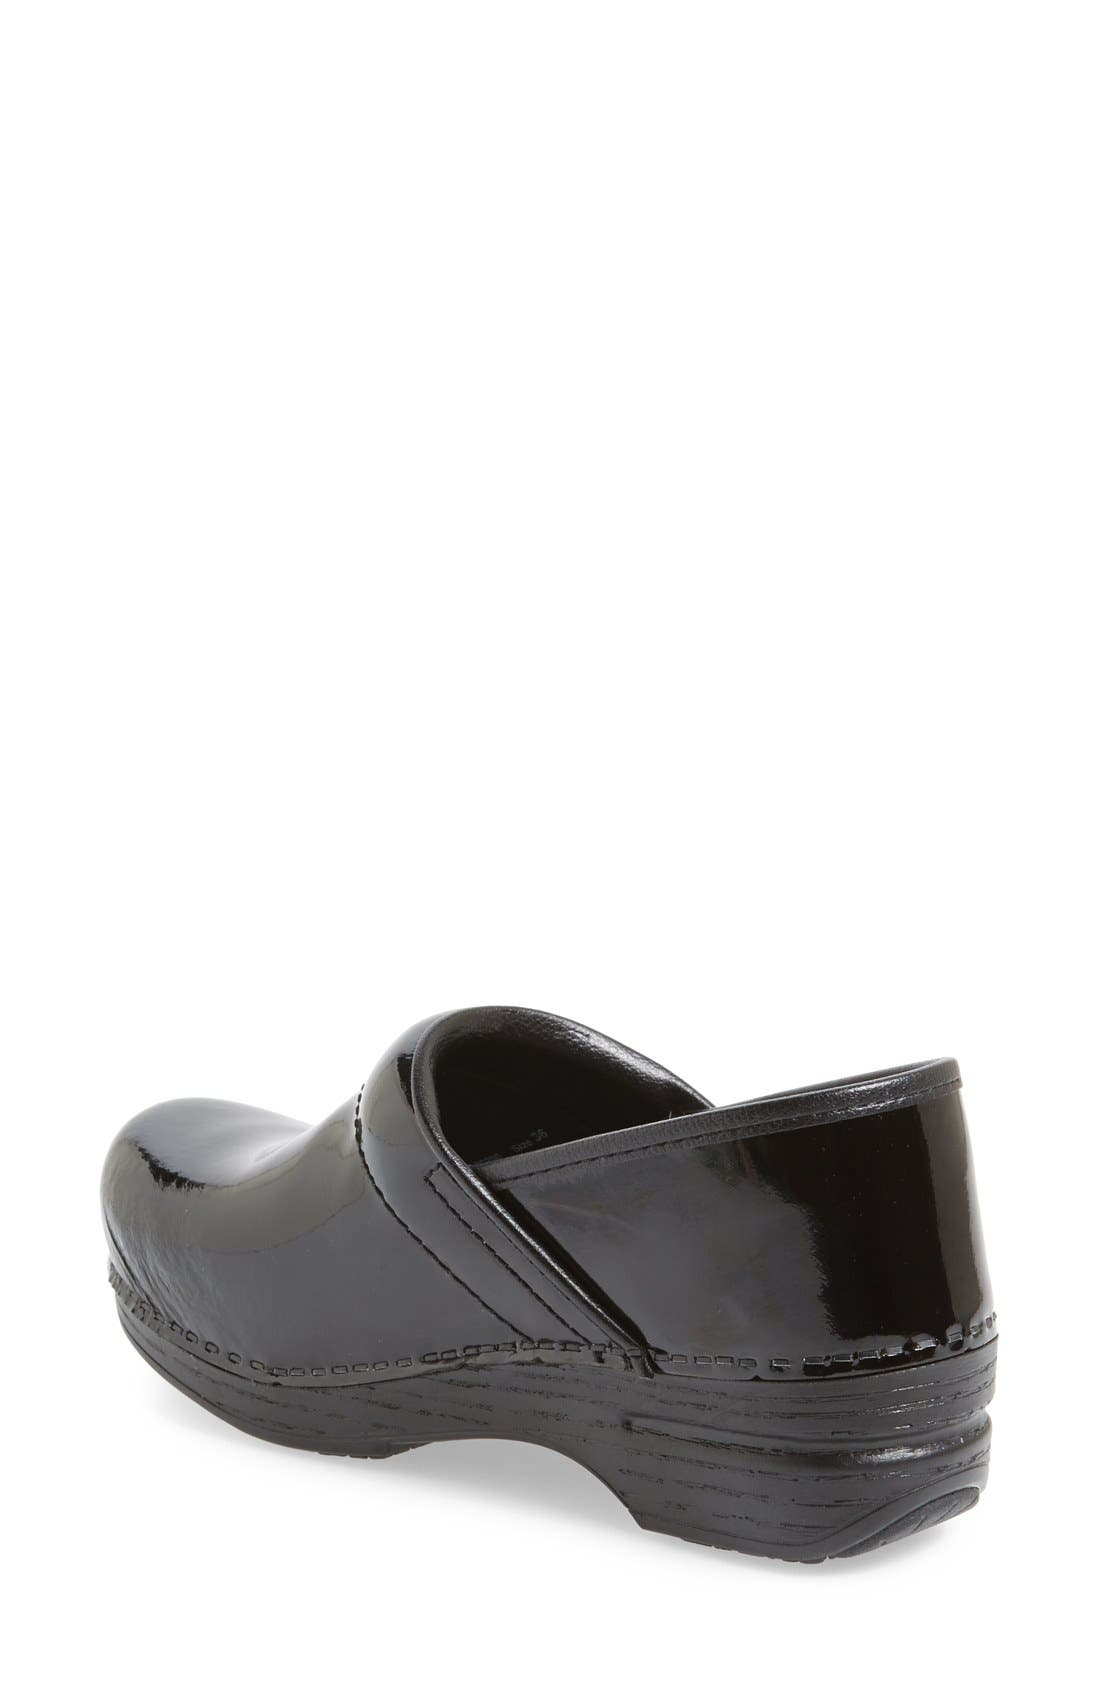 DANSKO,                             'Professional XP' Clog,                             Alternate thumbnail 2, color,                             BLACK PATENT/ BLACK